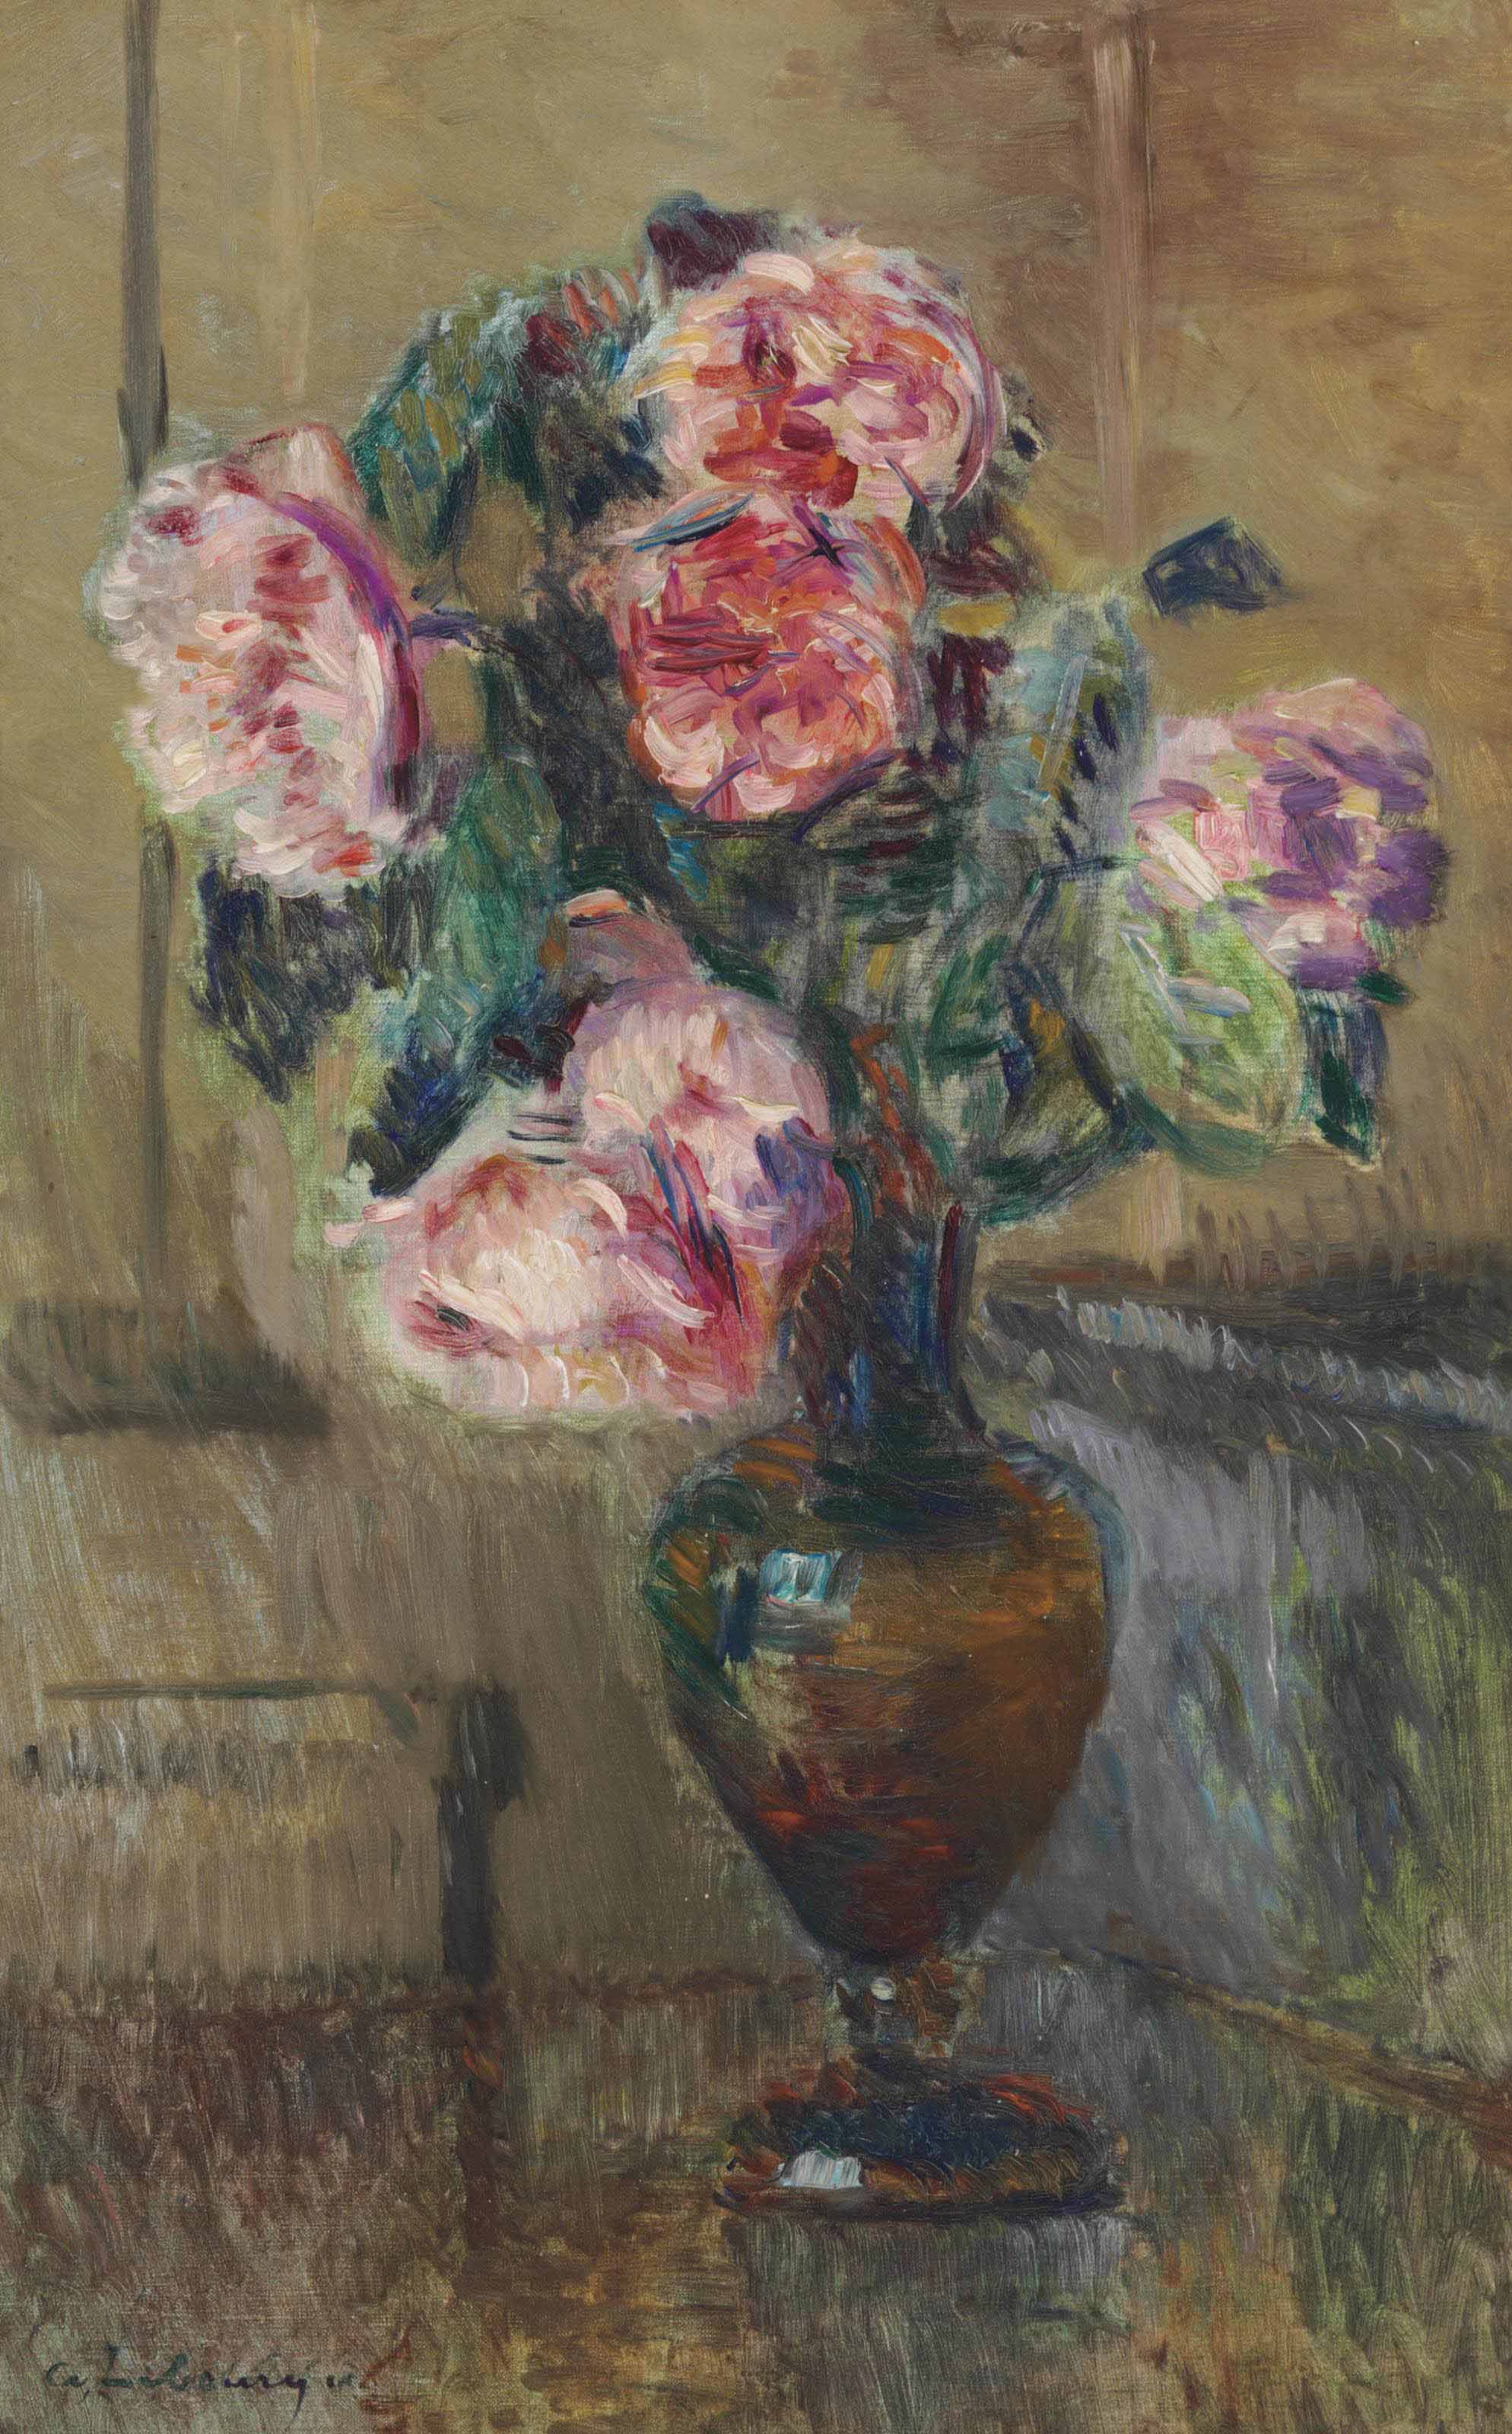 https://www.christies.com/img/LotImages/2012/NYR/2012_NYR_02556_0331_000(albert_lebourg_vase_de_fleurs).jpg